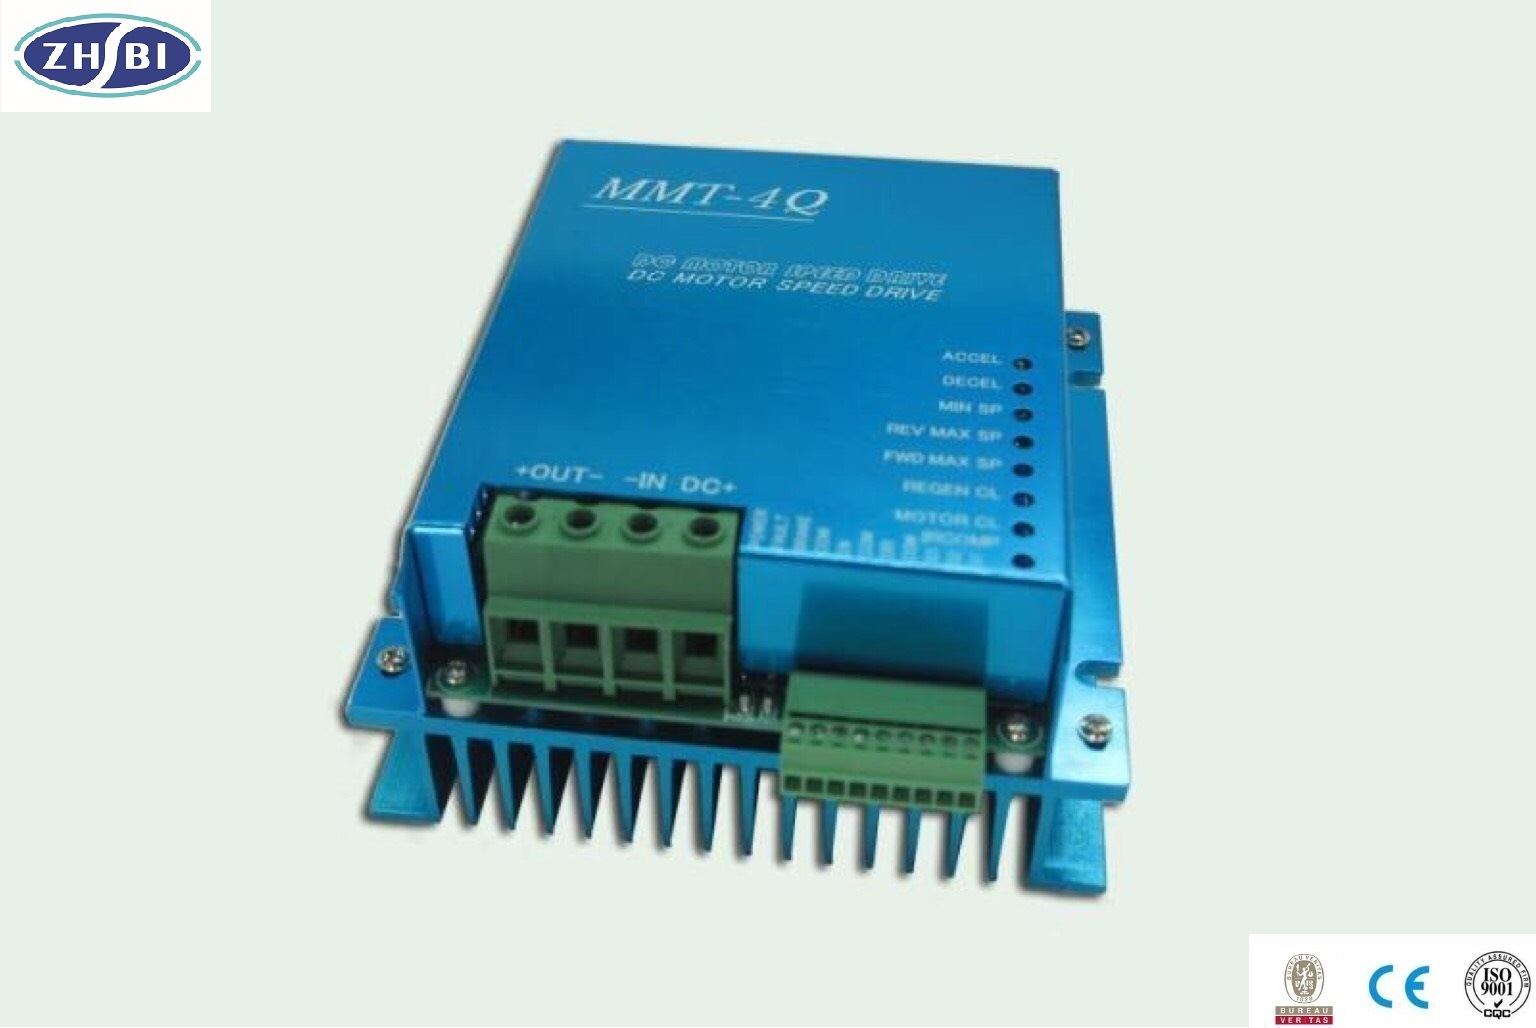 China Dc24rt50bl Mmt 4q Brush Dc Motor Speed Controller With Regen Brushed Servo Control Of A Pwm